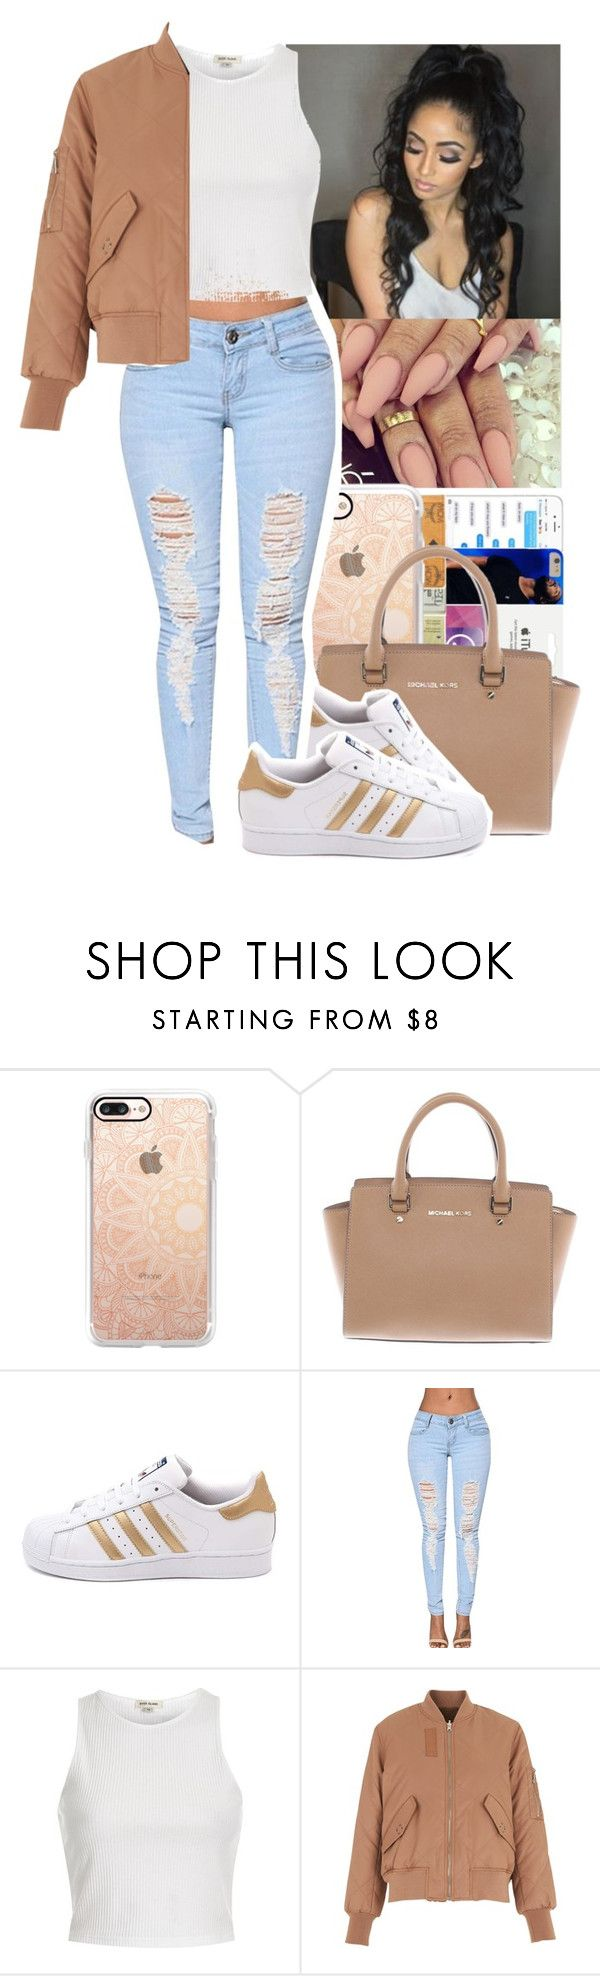 """The Weeknd - The Knowing"" by jasmine1164 ❤ liked on Polyvore featuring Casetify, Michael Kors, adidas, River Island and Whistles"